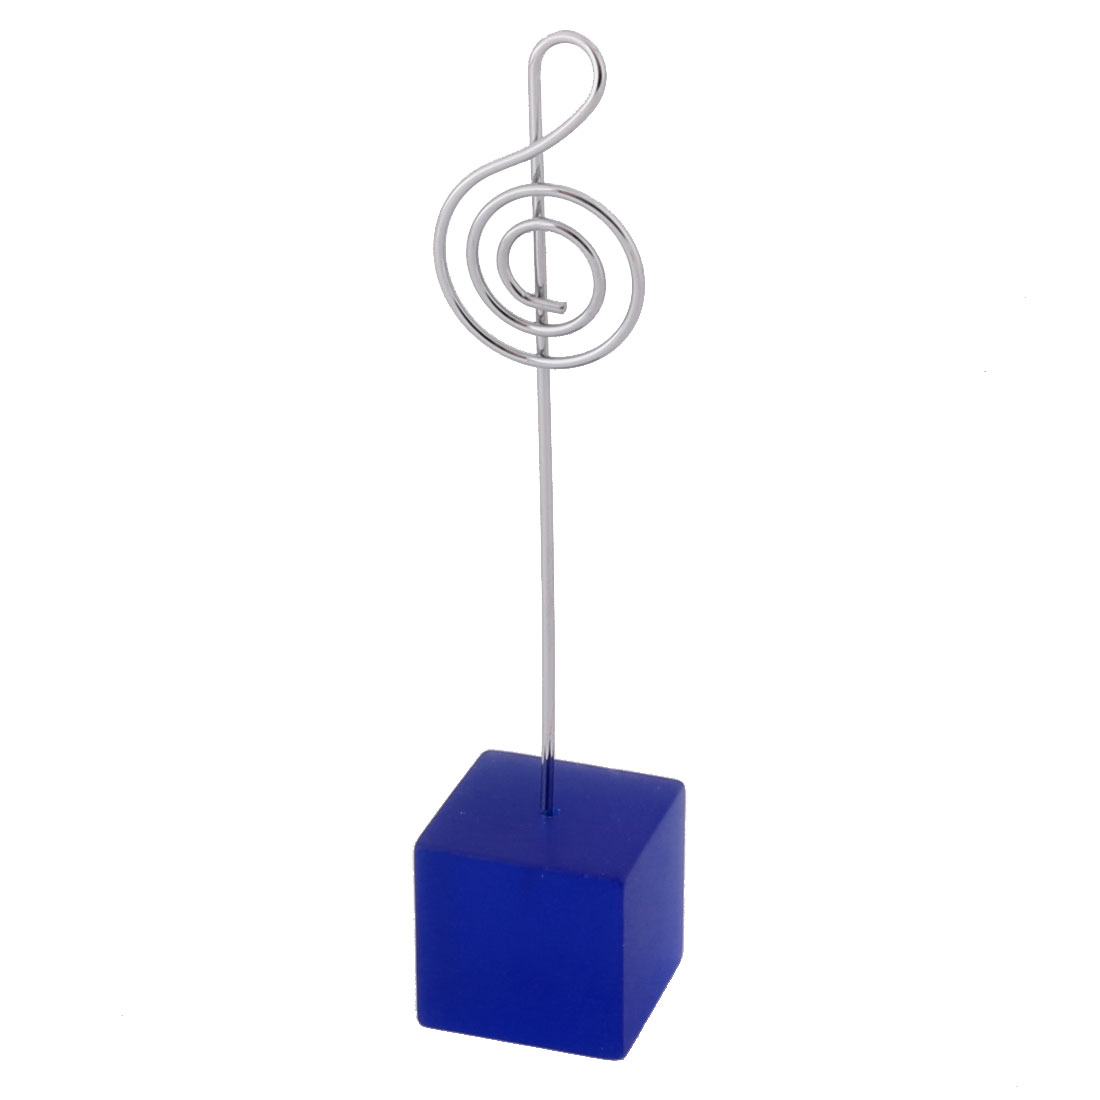 Household Office Resin Musical Note Shaped Tabletop Decor Photo Memo Clip Blue